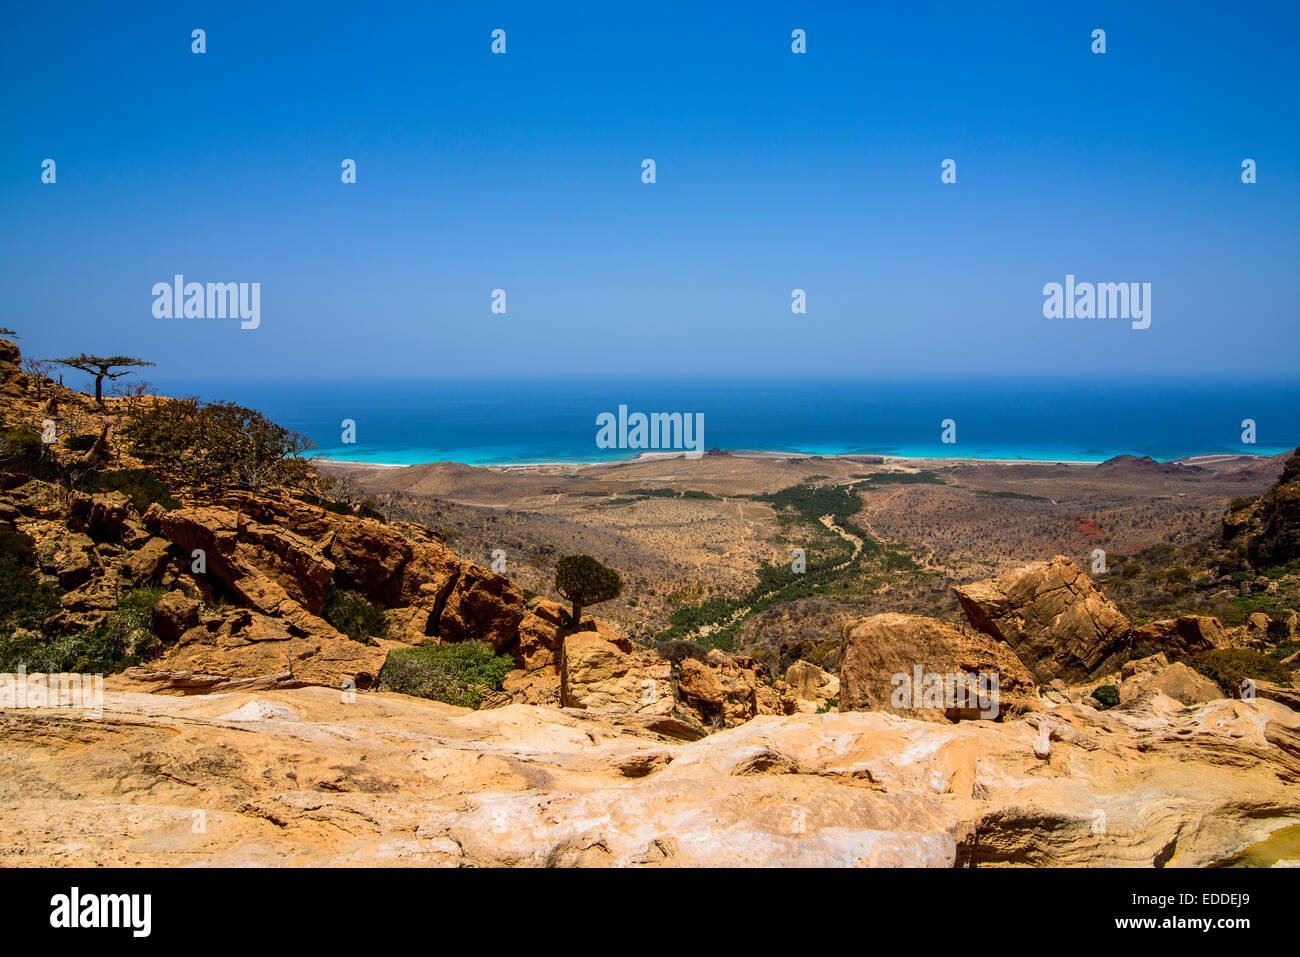 Coast, Homhil protected area, island of Socotra, Yemen - Stock Image